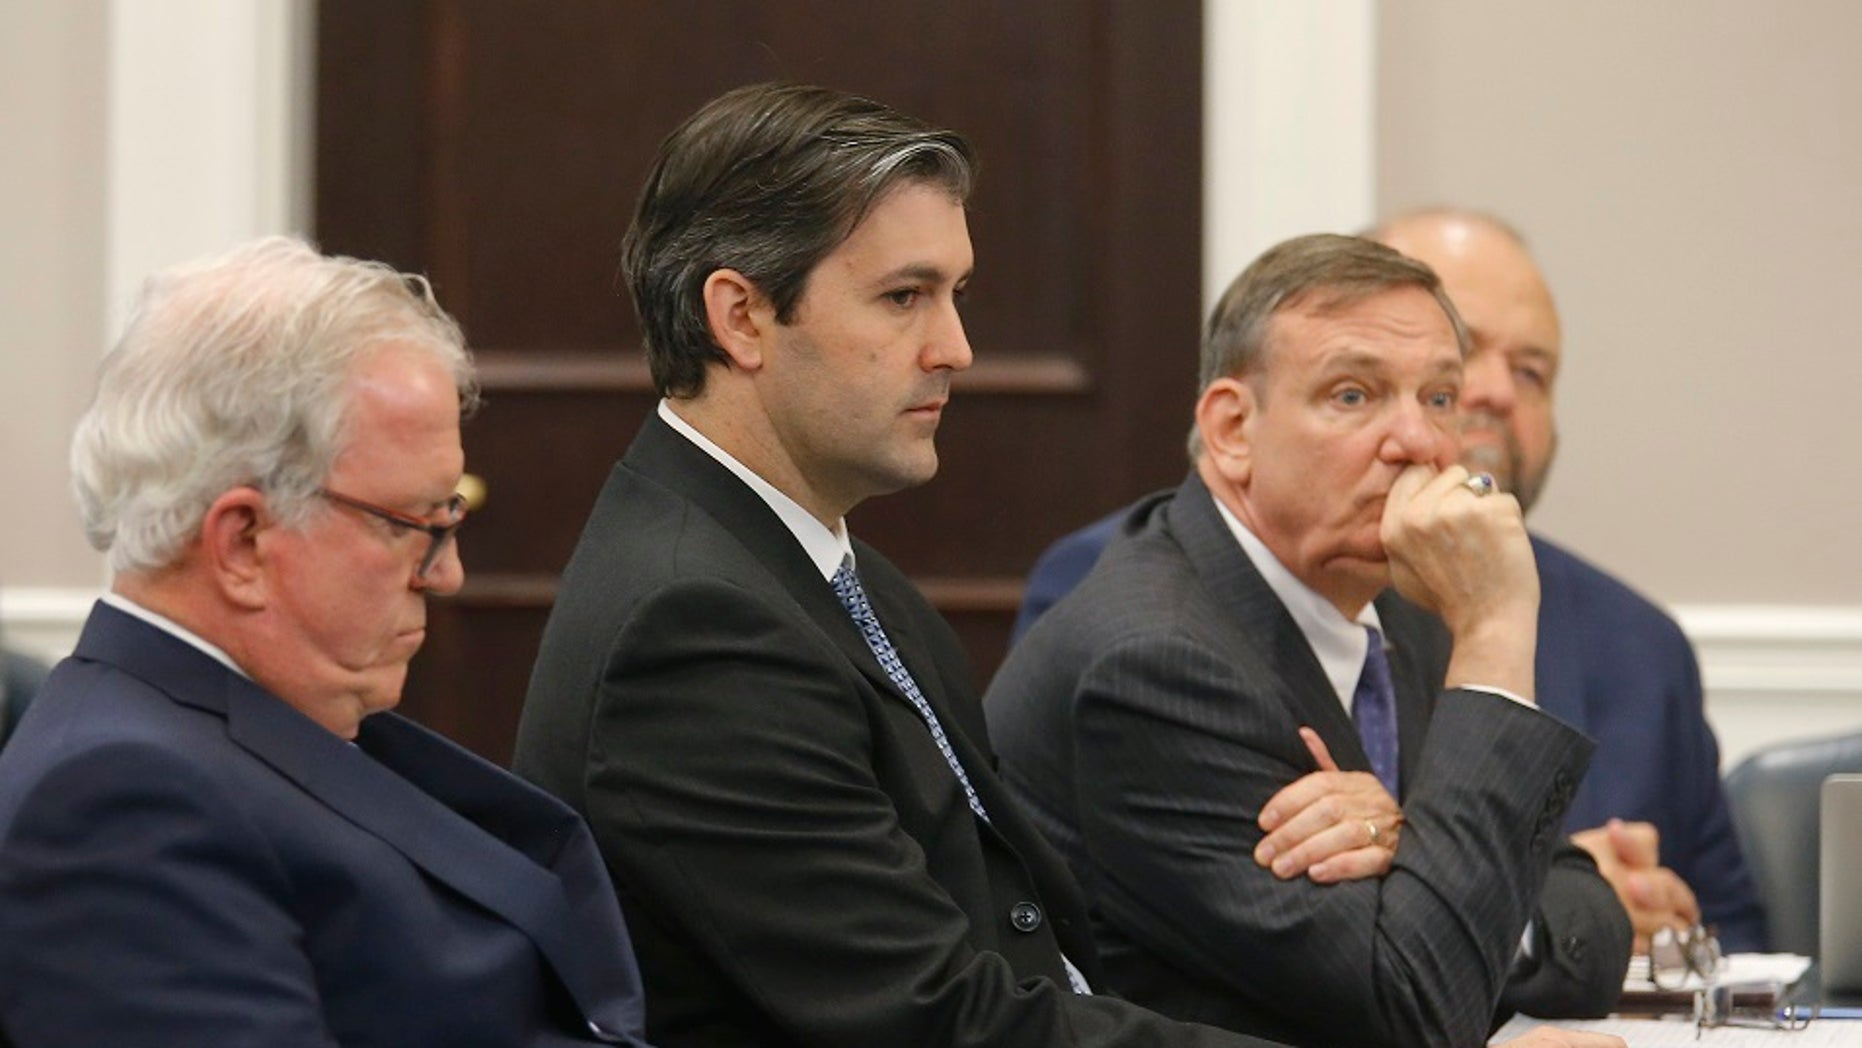 The sentencing hearing for former North Charleston police officer Michael Slager began on Dec. 4.